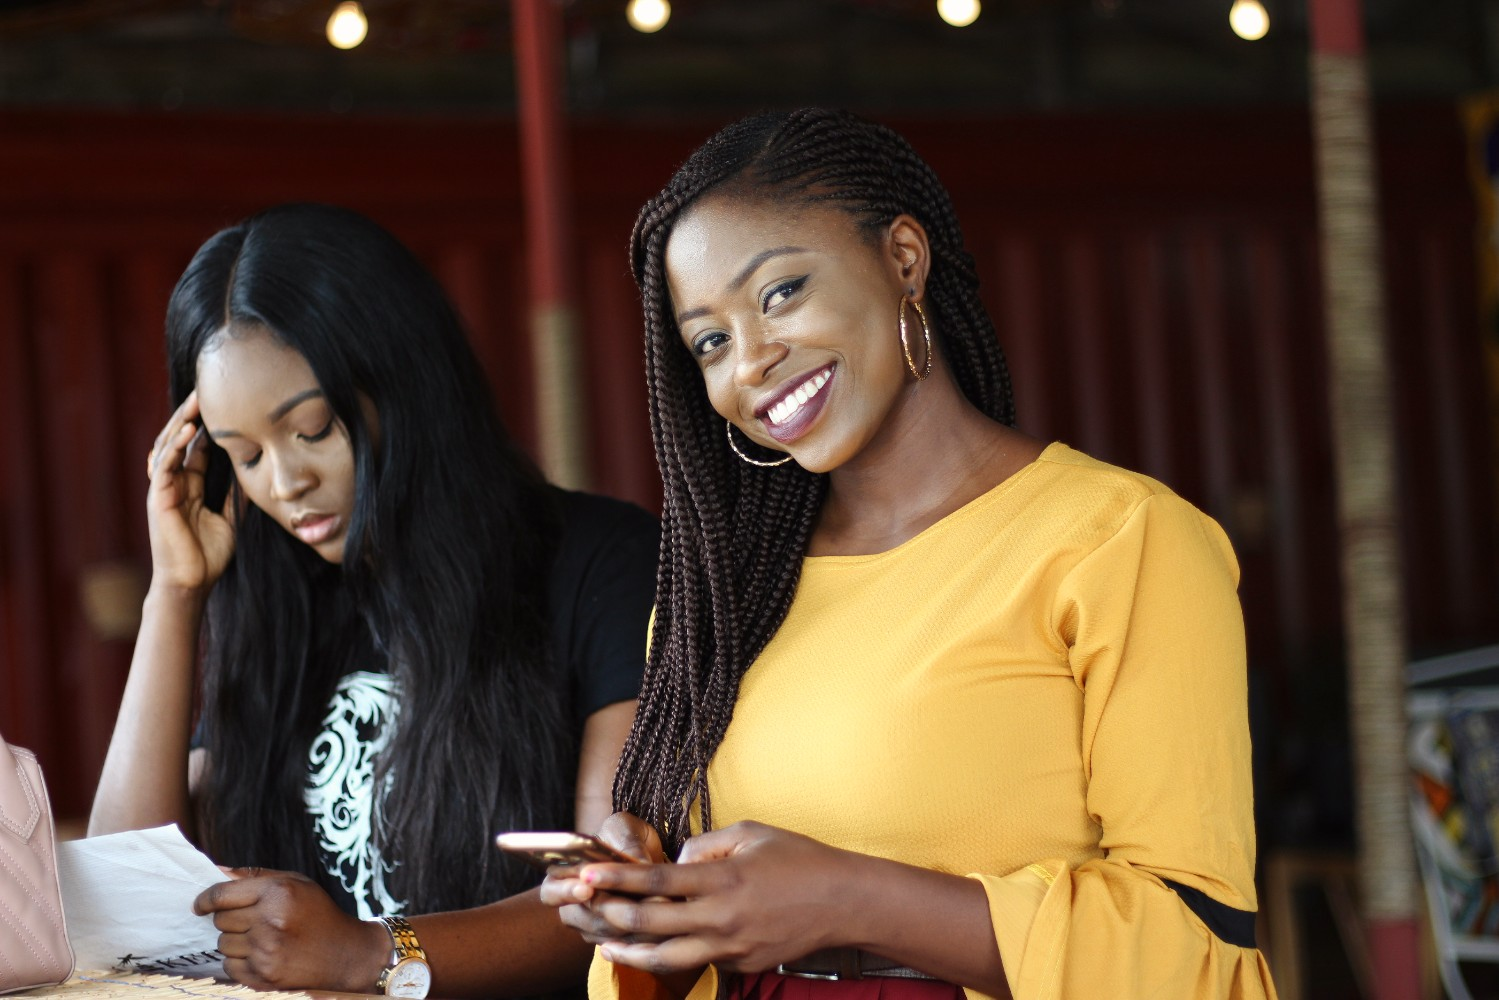 bloggers cafe hopping in Abuja